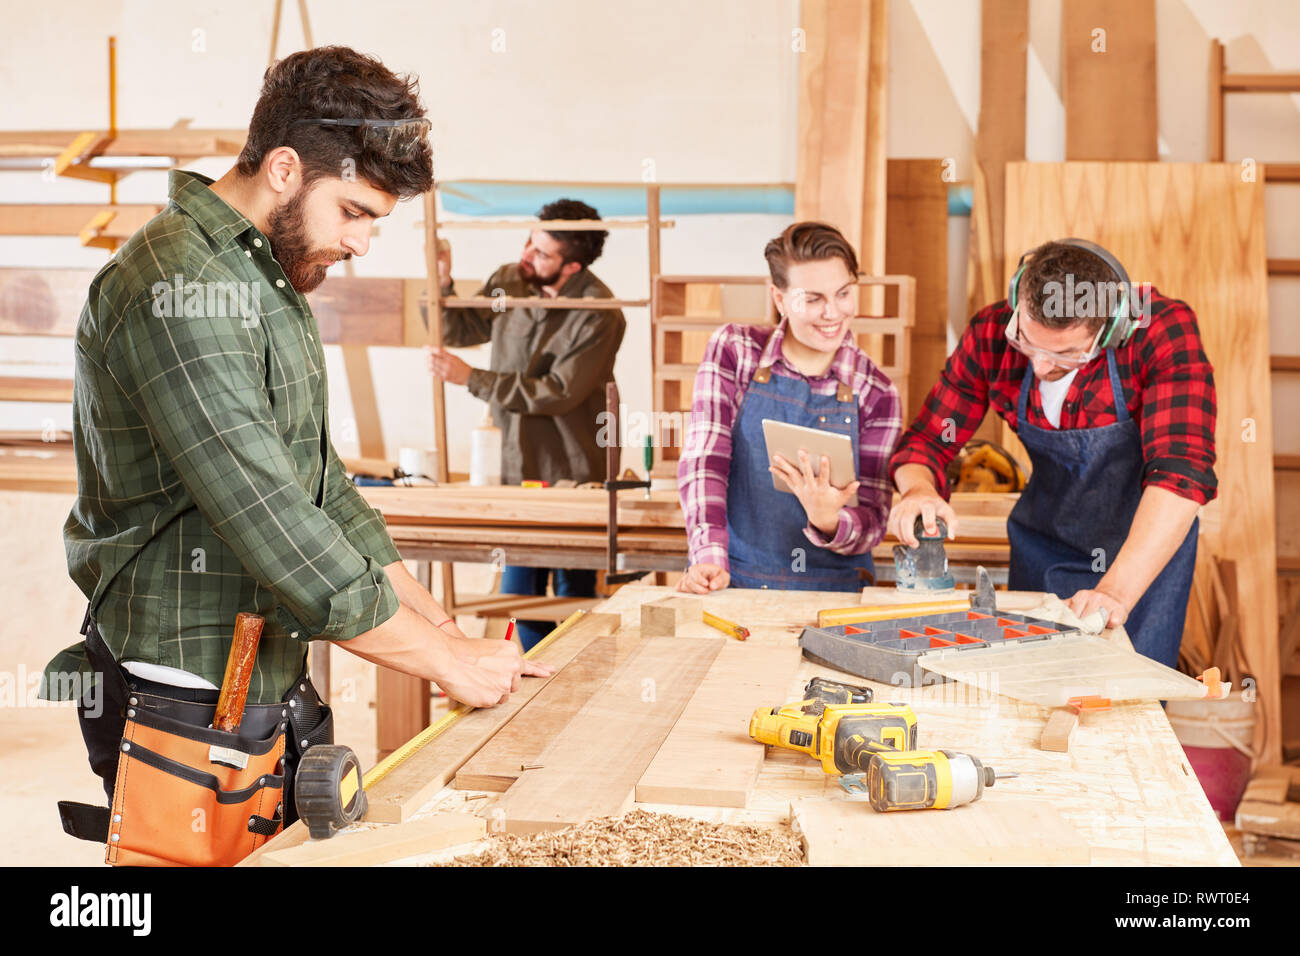 Joiner apprentices in training at the workbench in the carpentry workshop - Stock Image